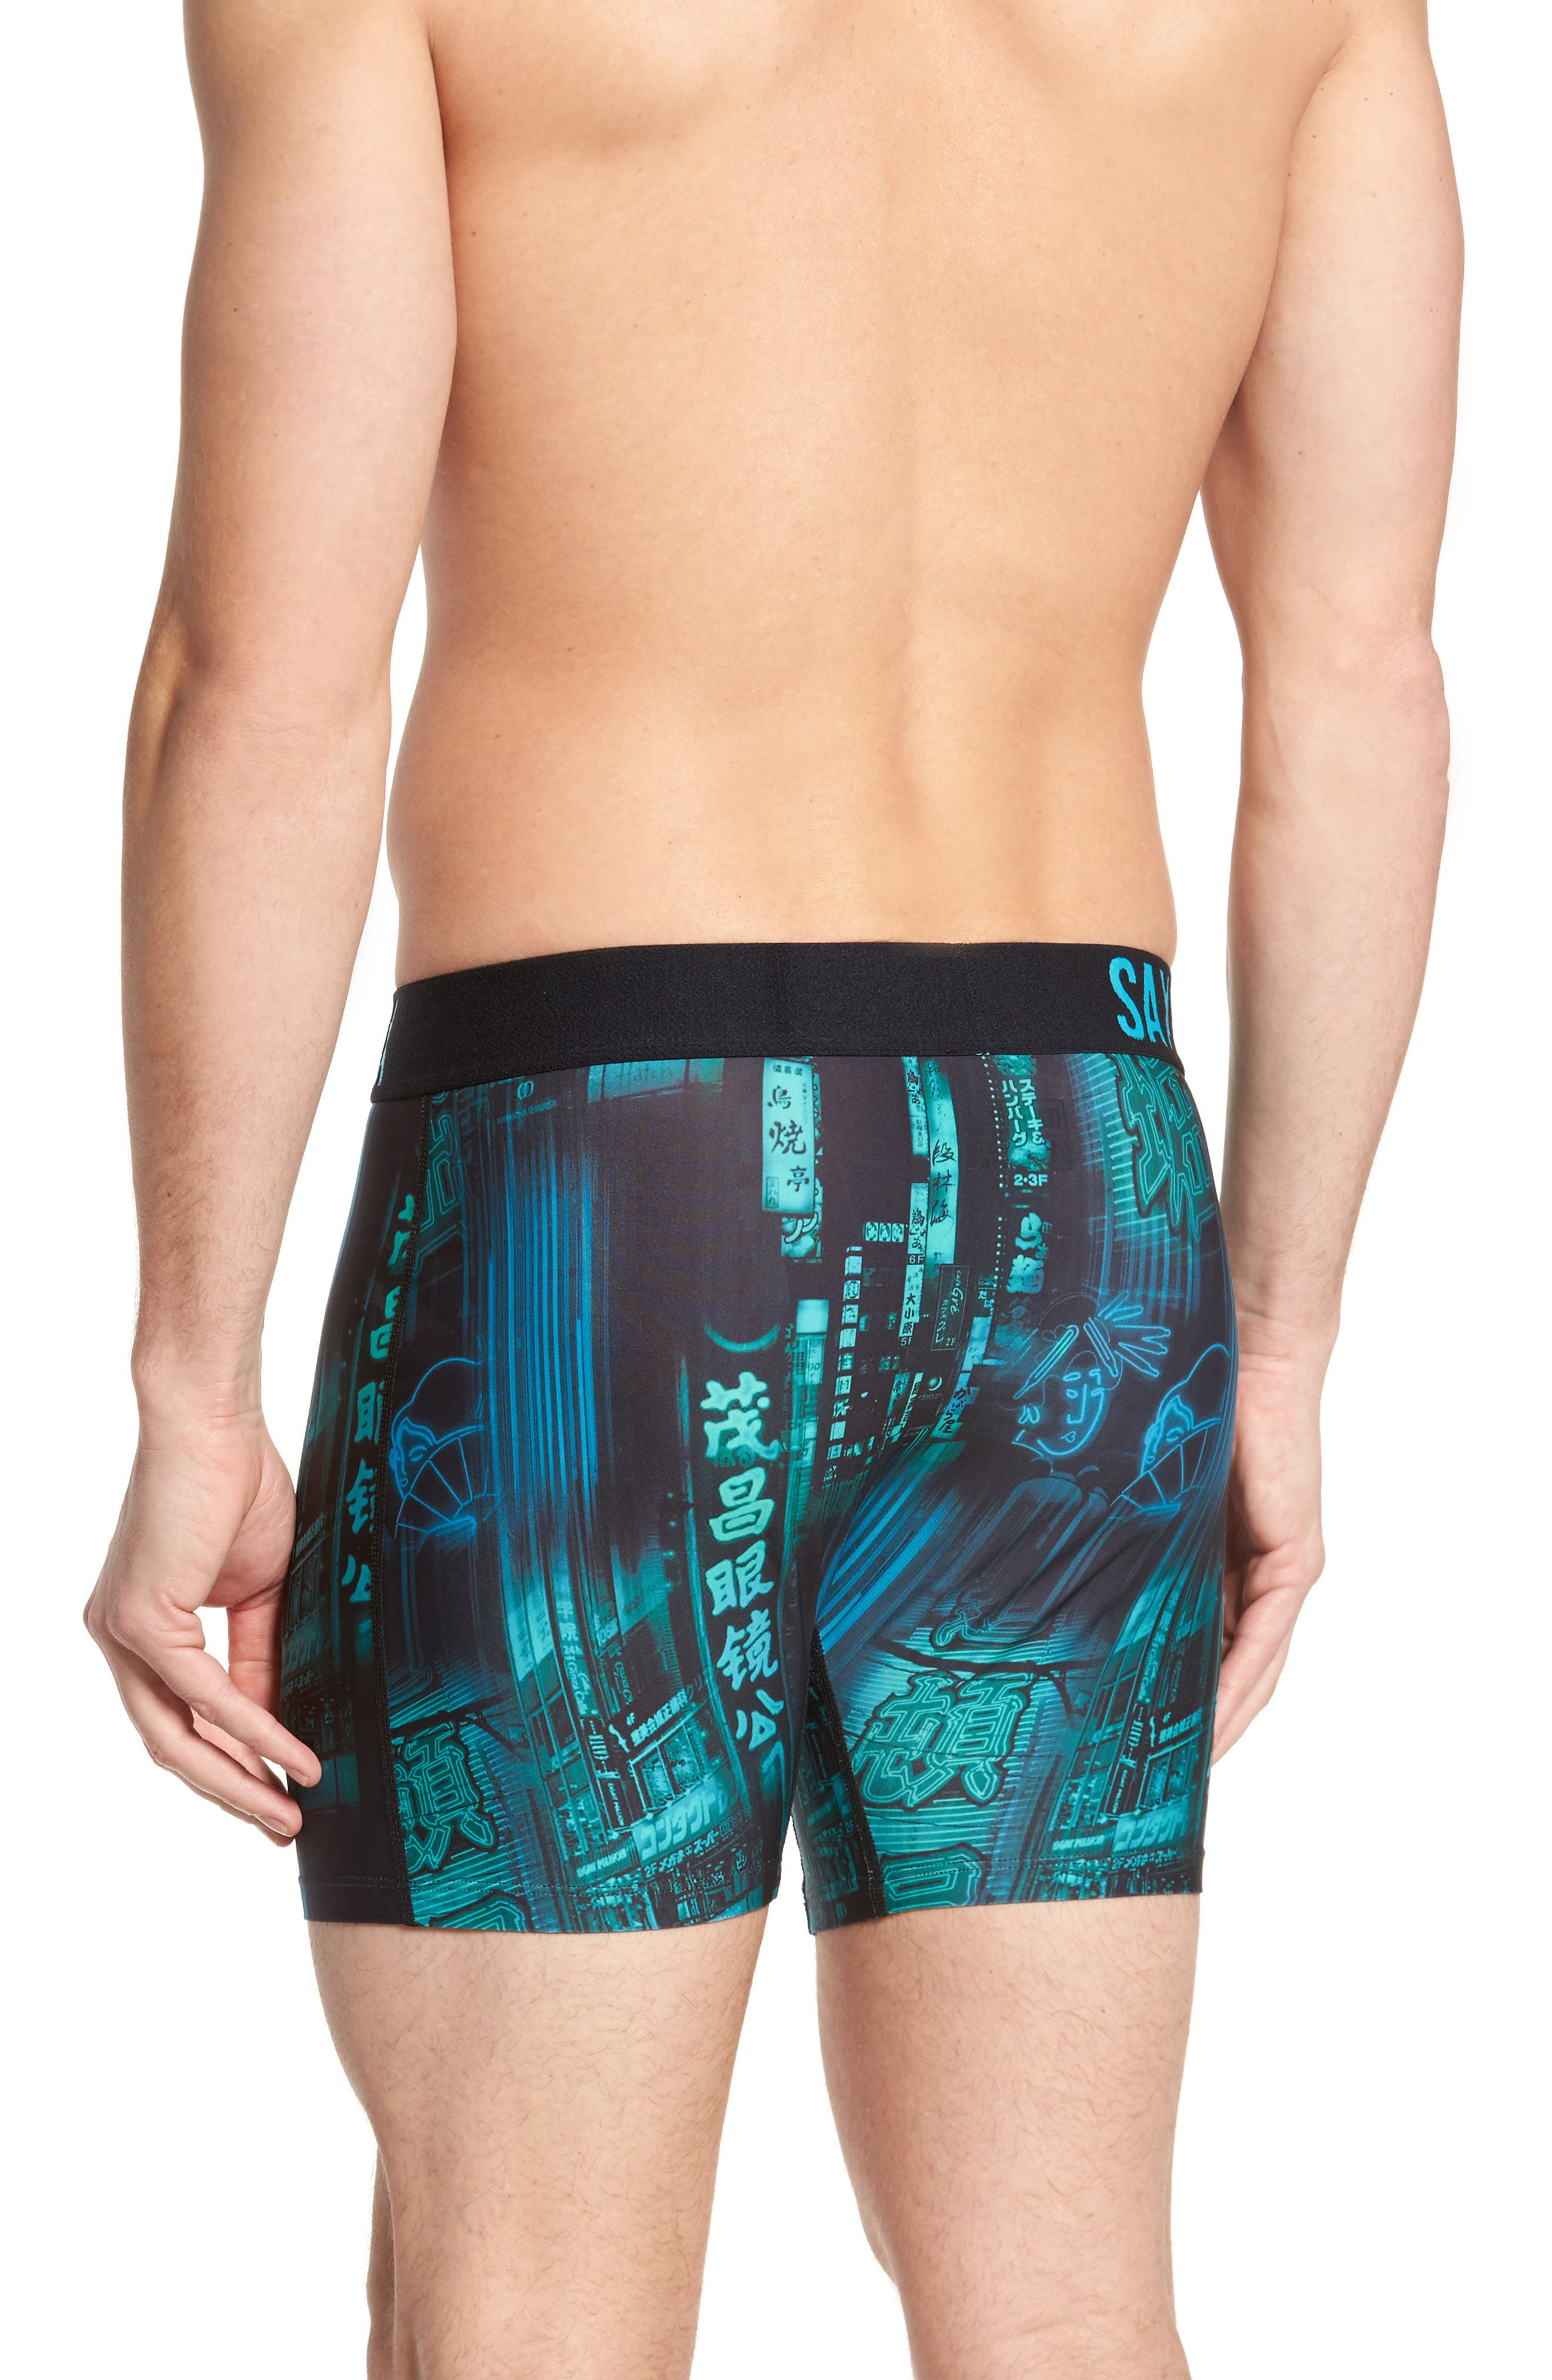 Fuse Neon Signs Boxer Briefs,                             Alternate thumbnail 2, color,                             Blade Runner